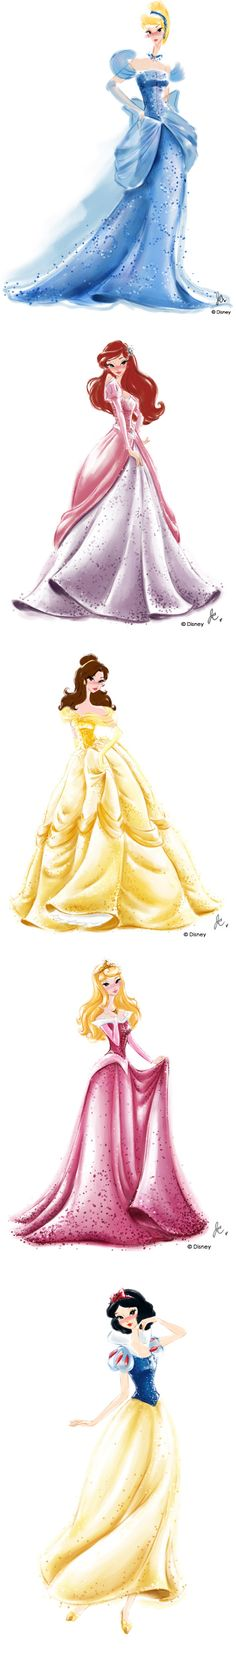 Disney Princess Watercolors by Jenny Chung